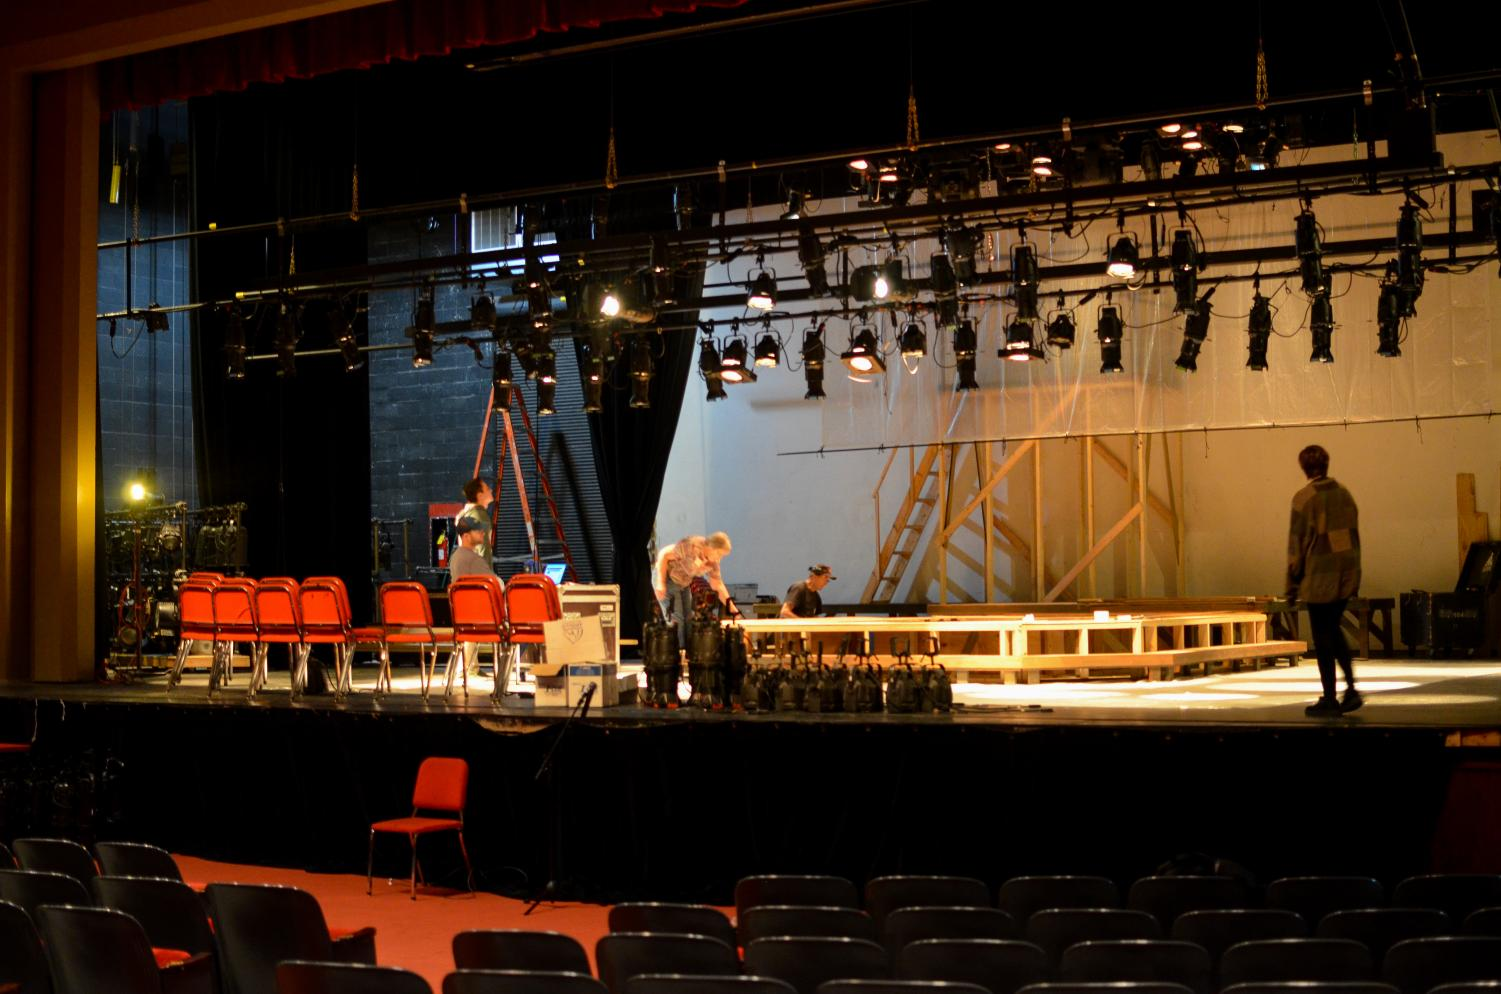 While rehearsals go on almost every day after school, crew members also work for hours to set up the stage and lighting for the play.